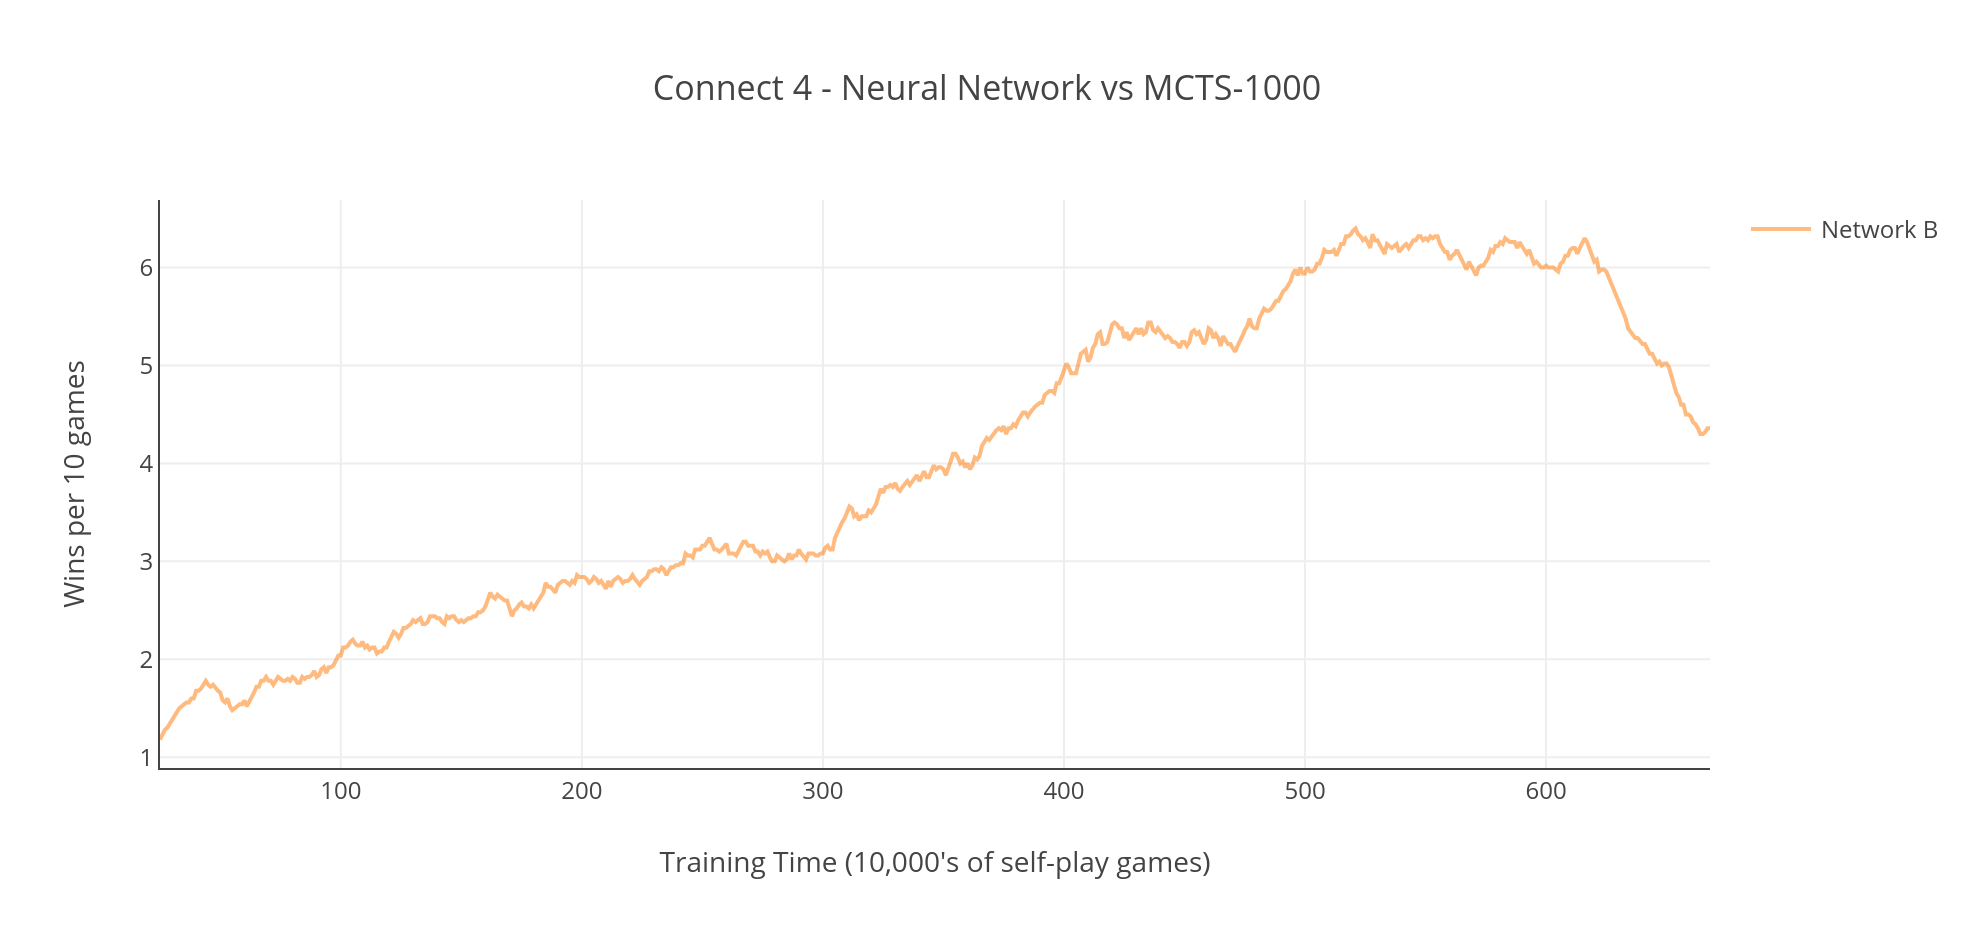 Graph showing a Neural Network overfitting when playing against a MCTS-1000 Player in a game of Connect 4